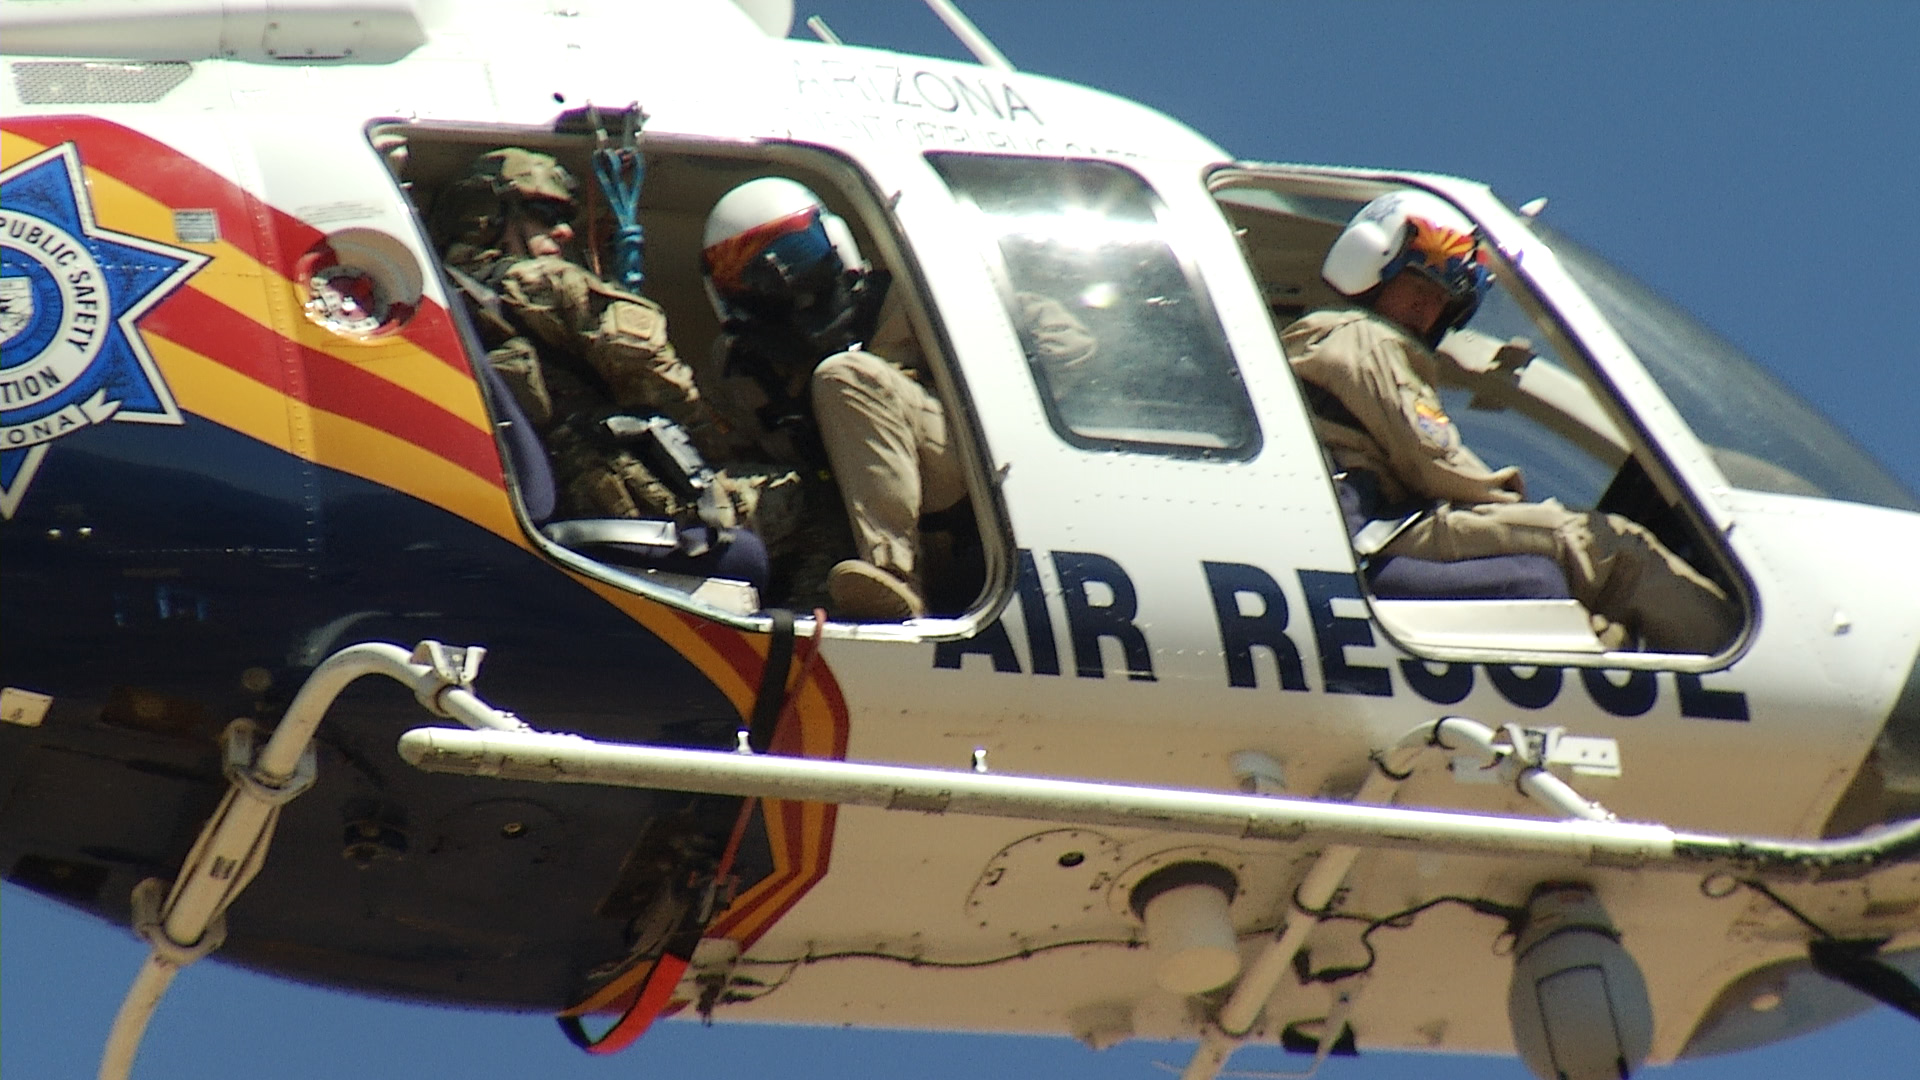 A joint, simulated rescue by Border Patrol and DPS, May 4, 2018.